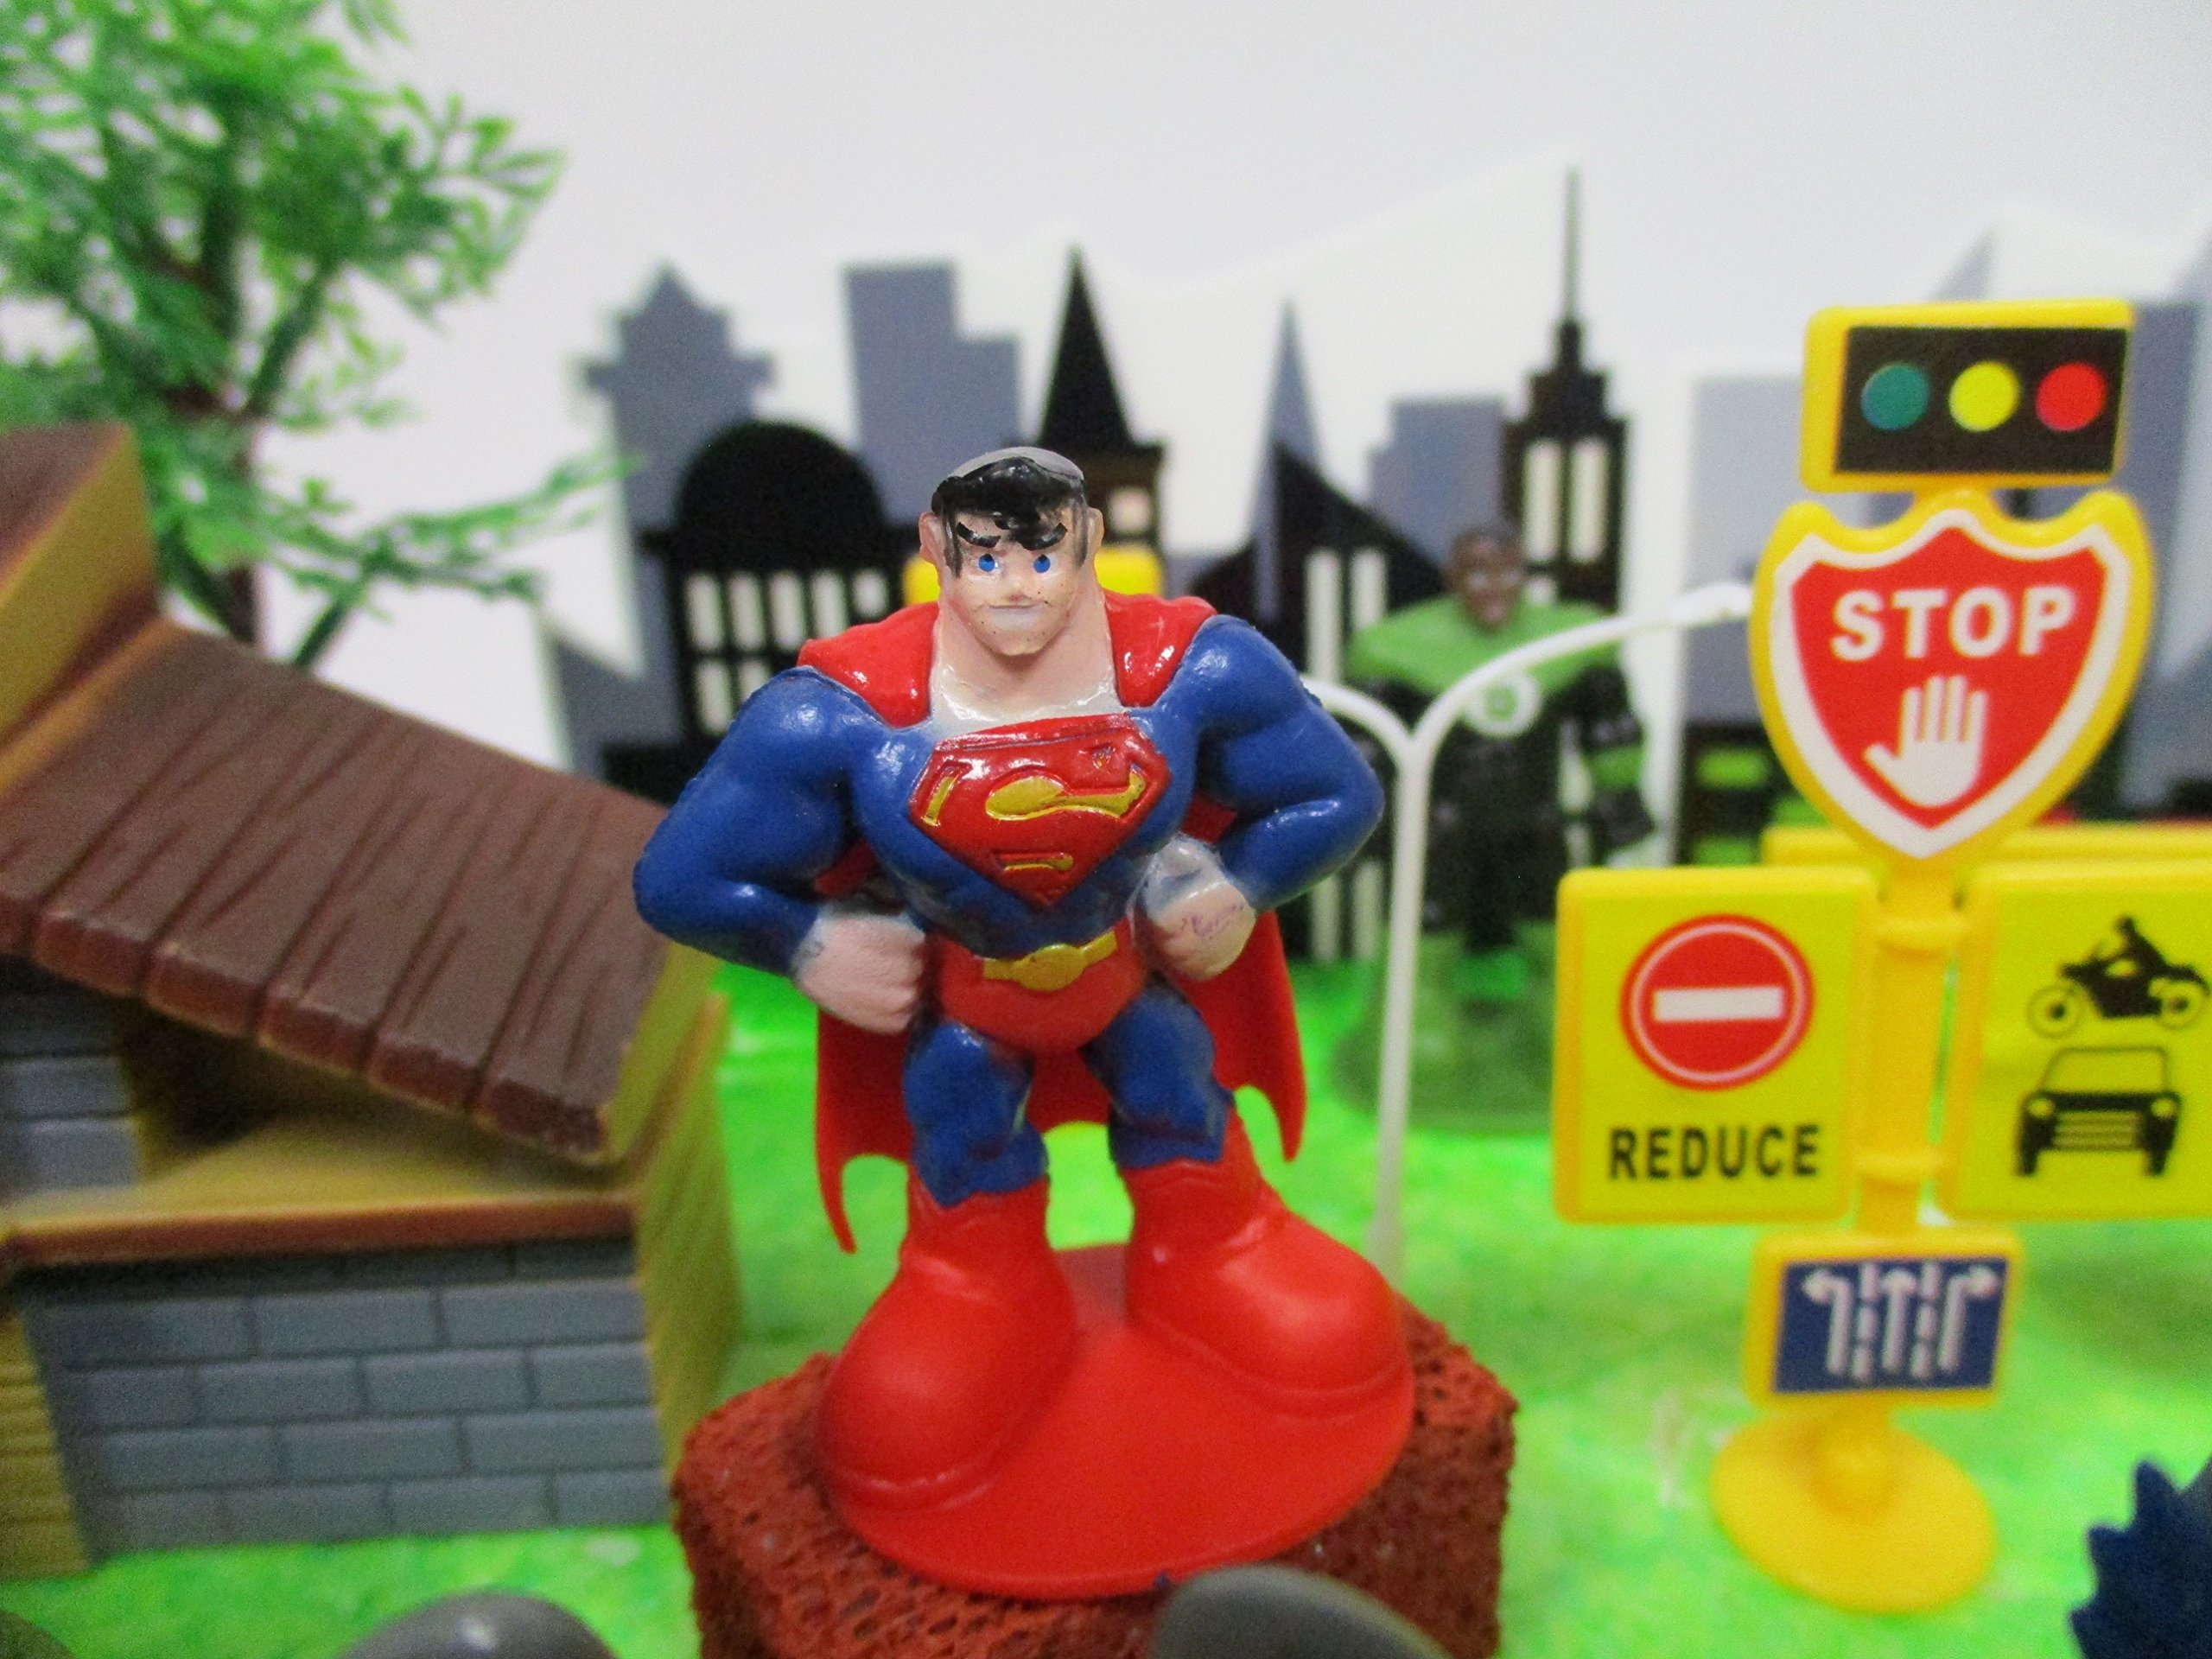 DC Comic Super Friends Birthday Cake Topper Set Featuring Super Hero Crime Fighters and Villains with Decorative Accessories by Kitoo (Image #9)